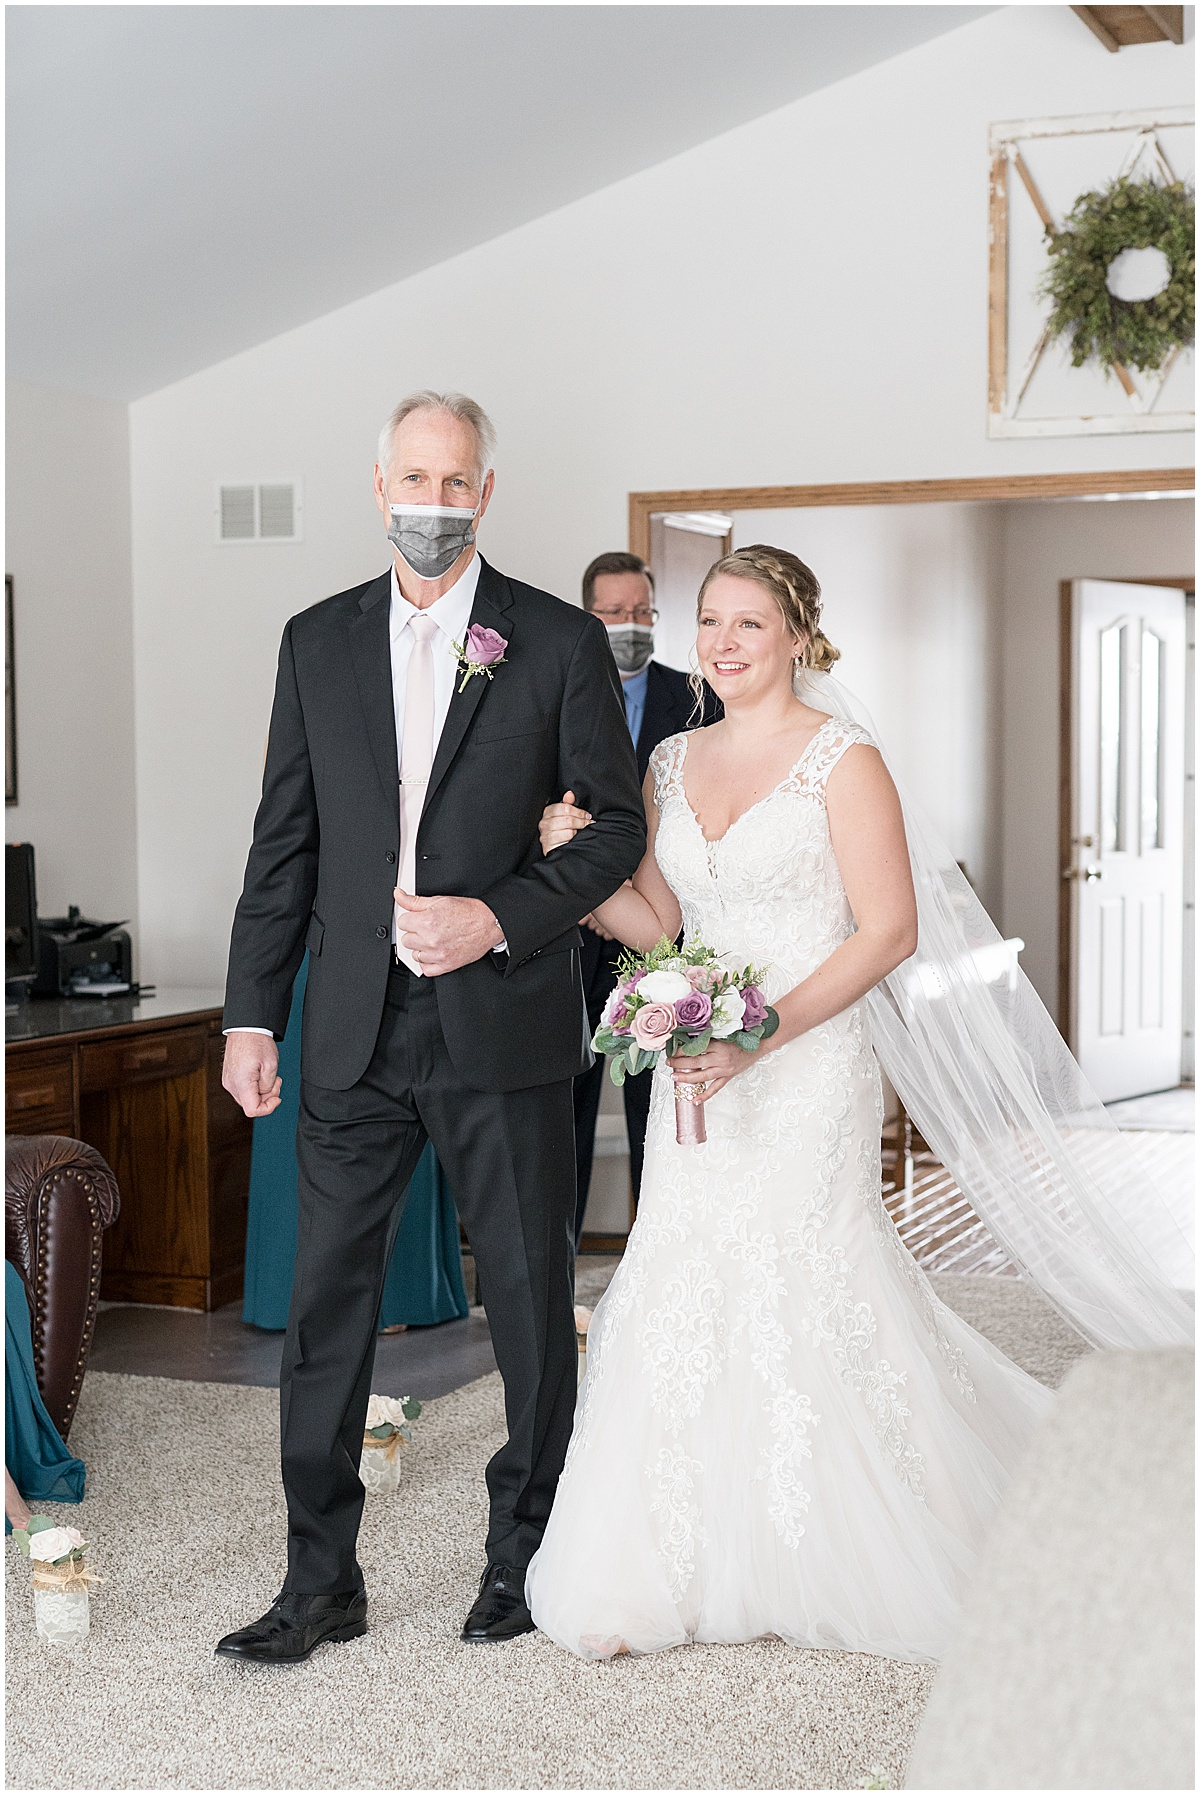 Bride walking down the aisle in at-home, socially distanced wedding in Tinley Park, Illinois